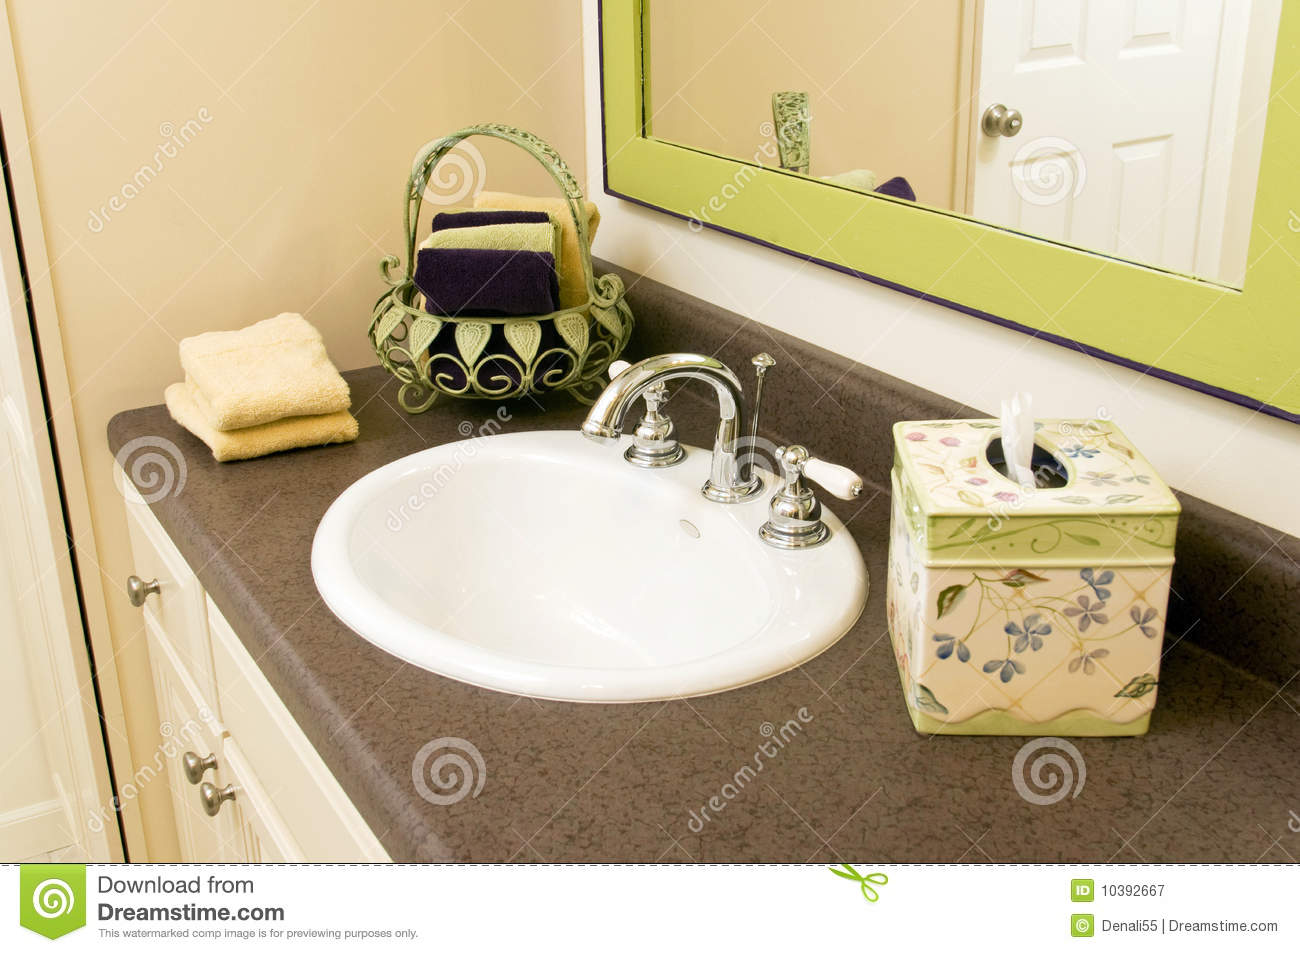 Bathroom sink with accessories royalty free stock for Bathroom sink accessories sets